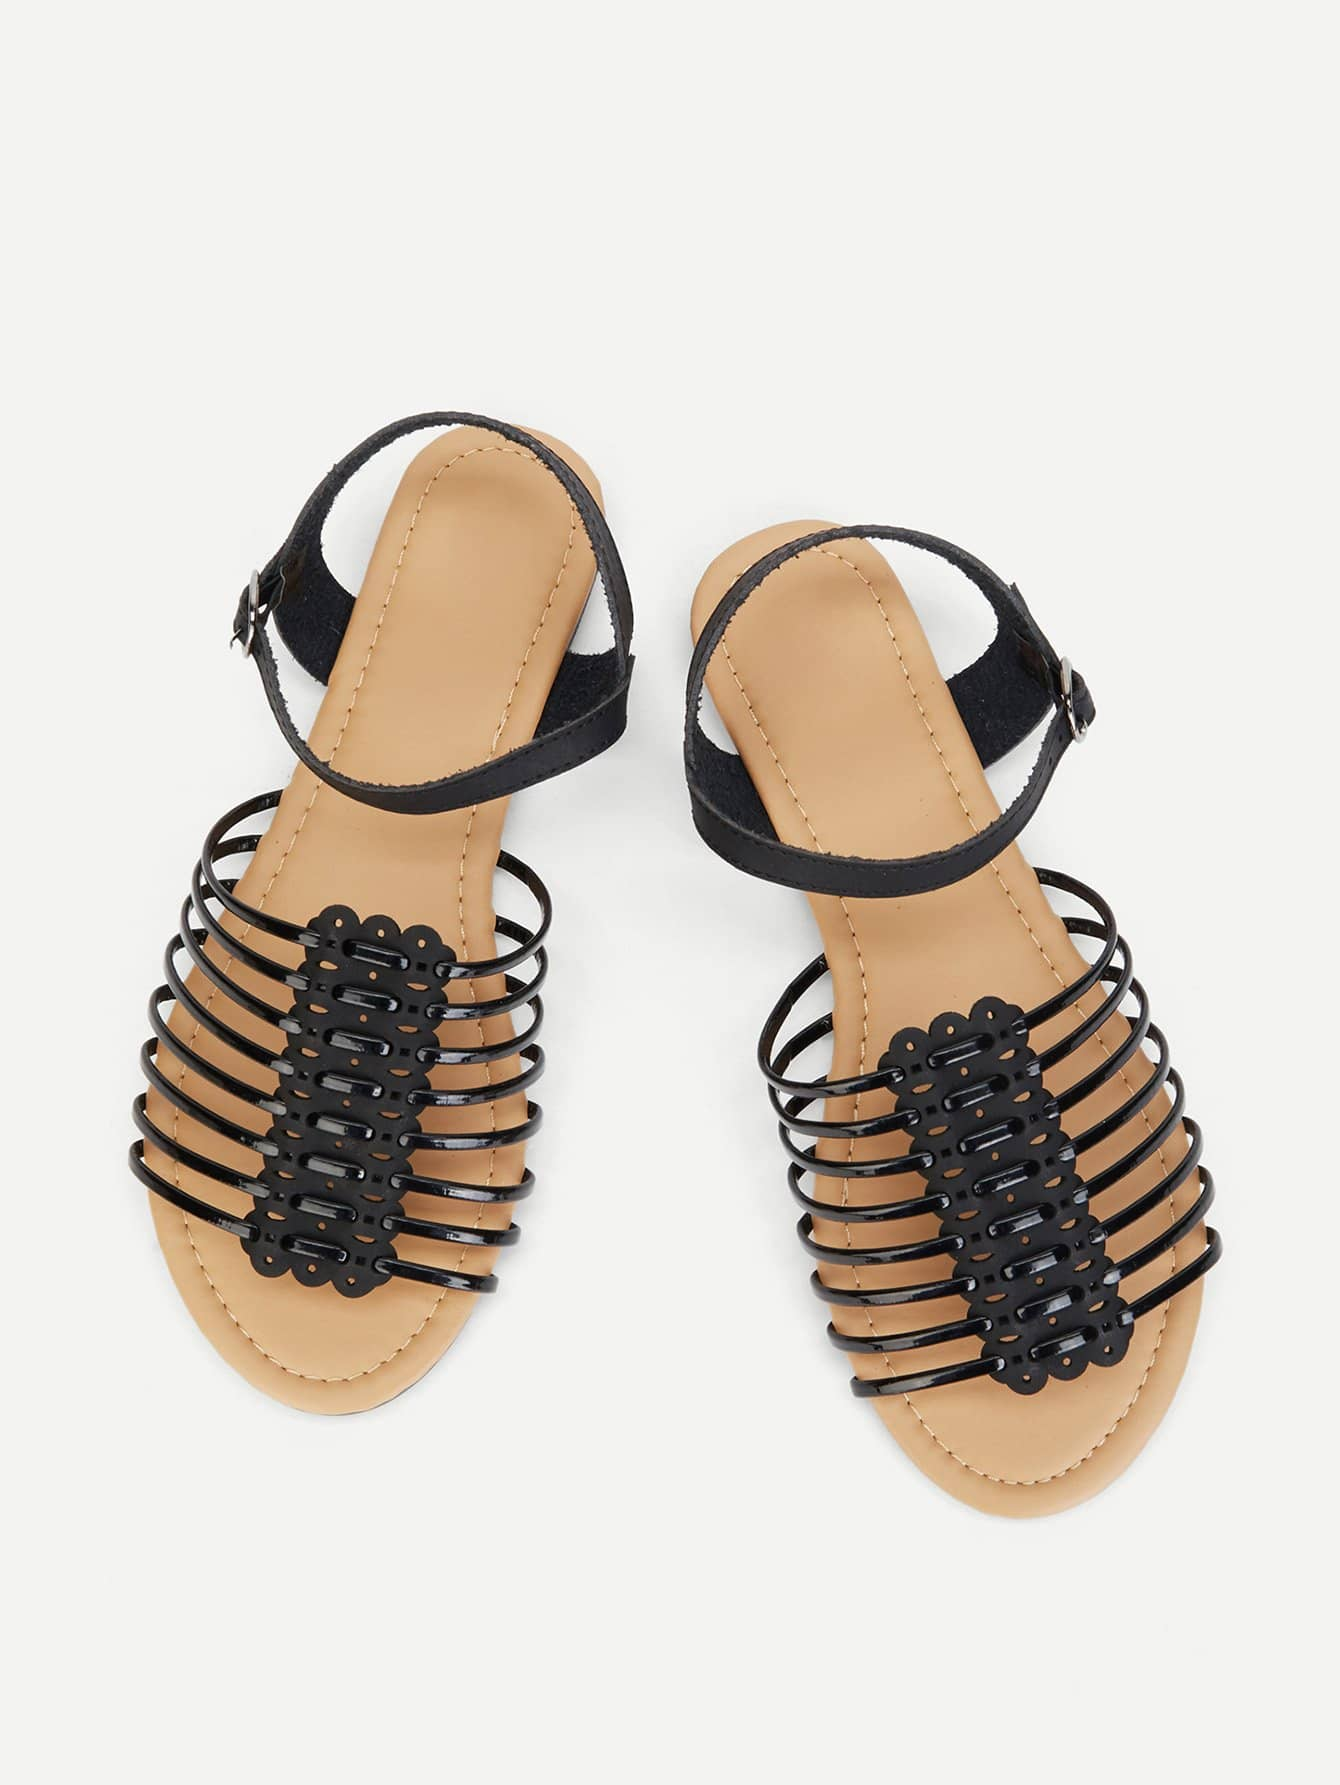 Peep Toe Flat Sandals ladies sandals 2018 new women sandals casual flat shoes fashion peep toe summer beach sandals string bead bohemian wedge sandals